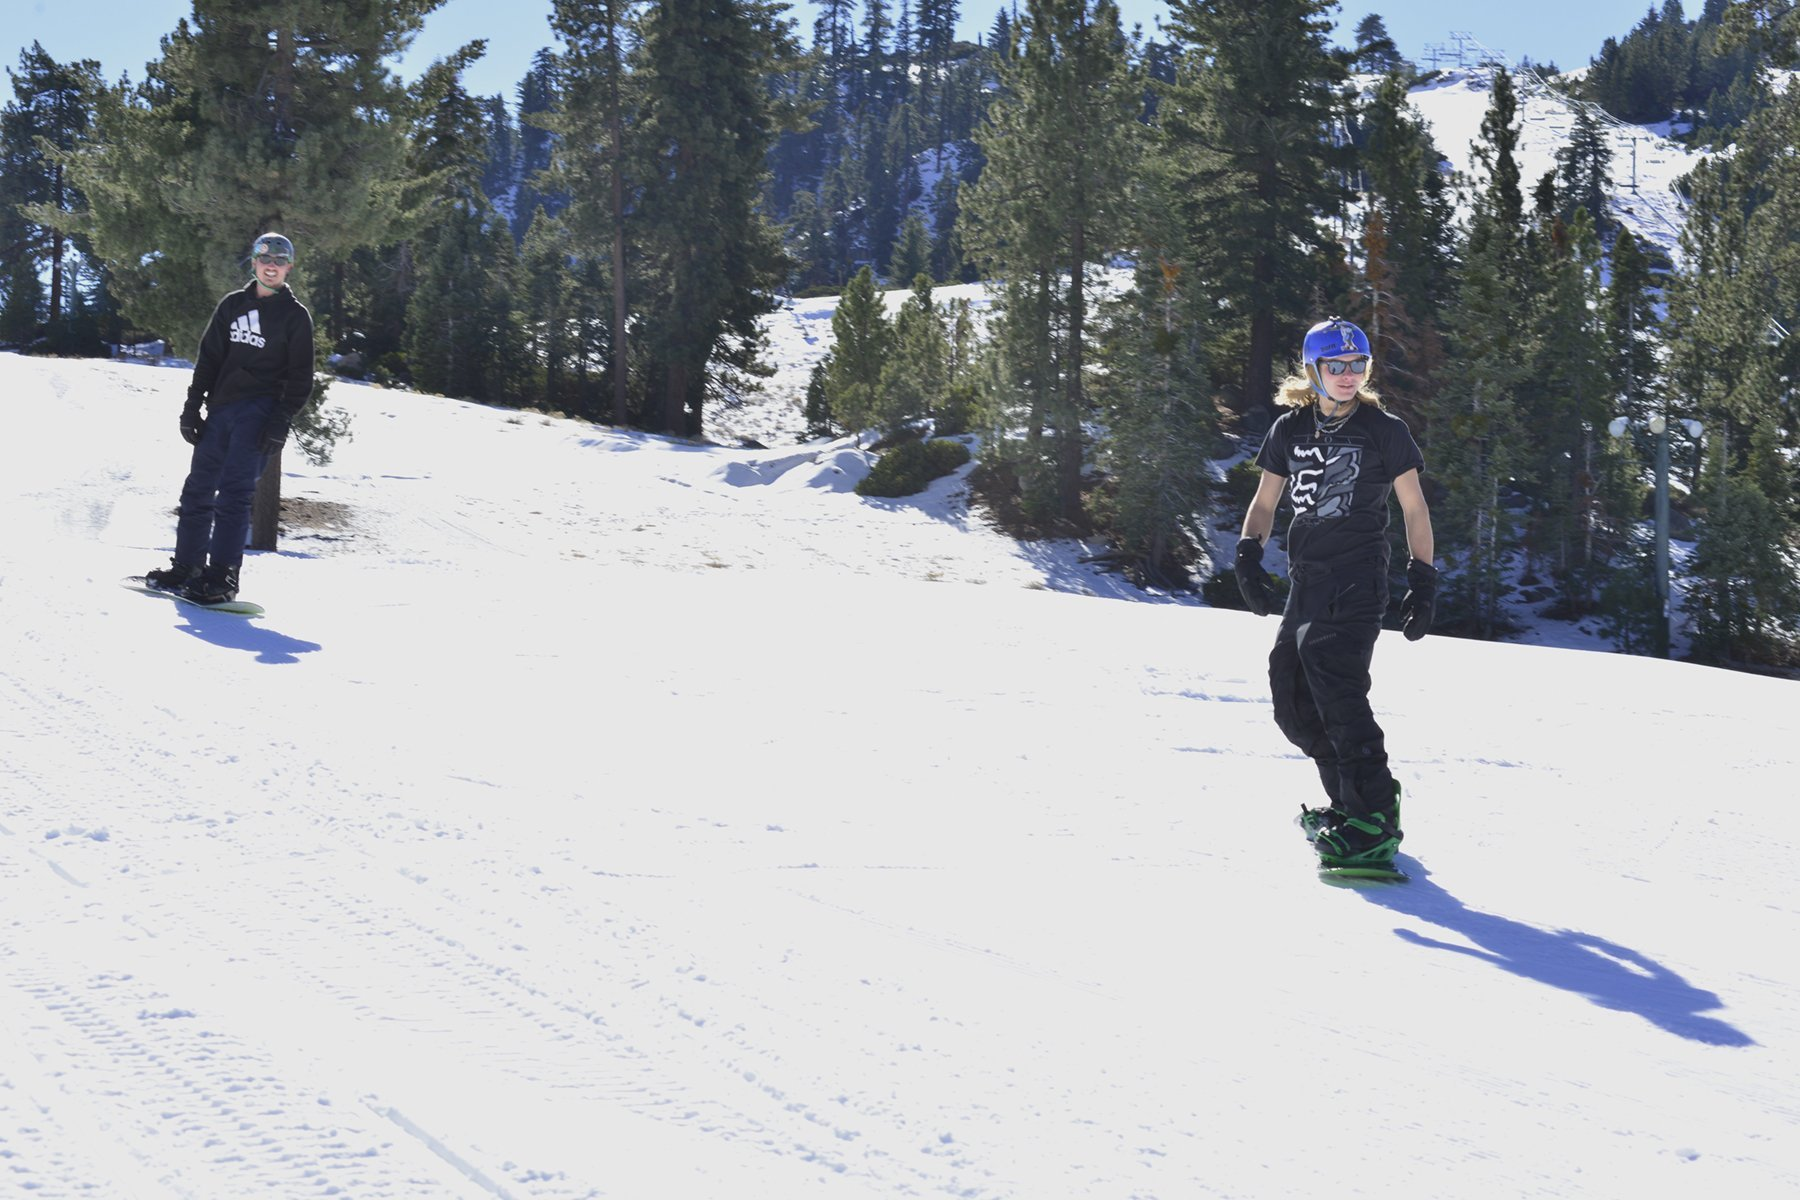 Two smiling snowboarders heading downhill in casual wear